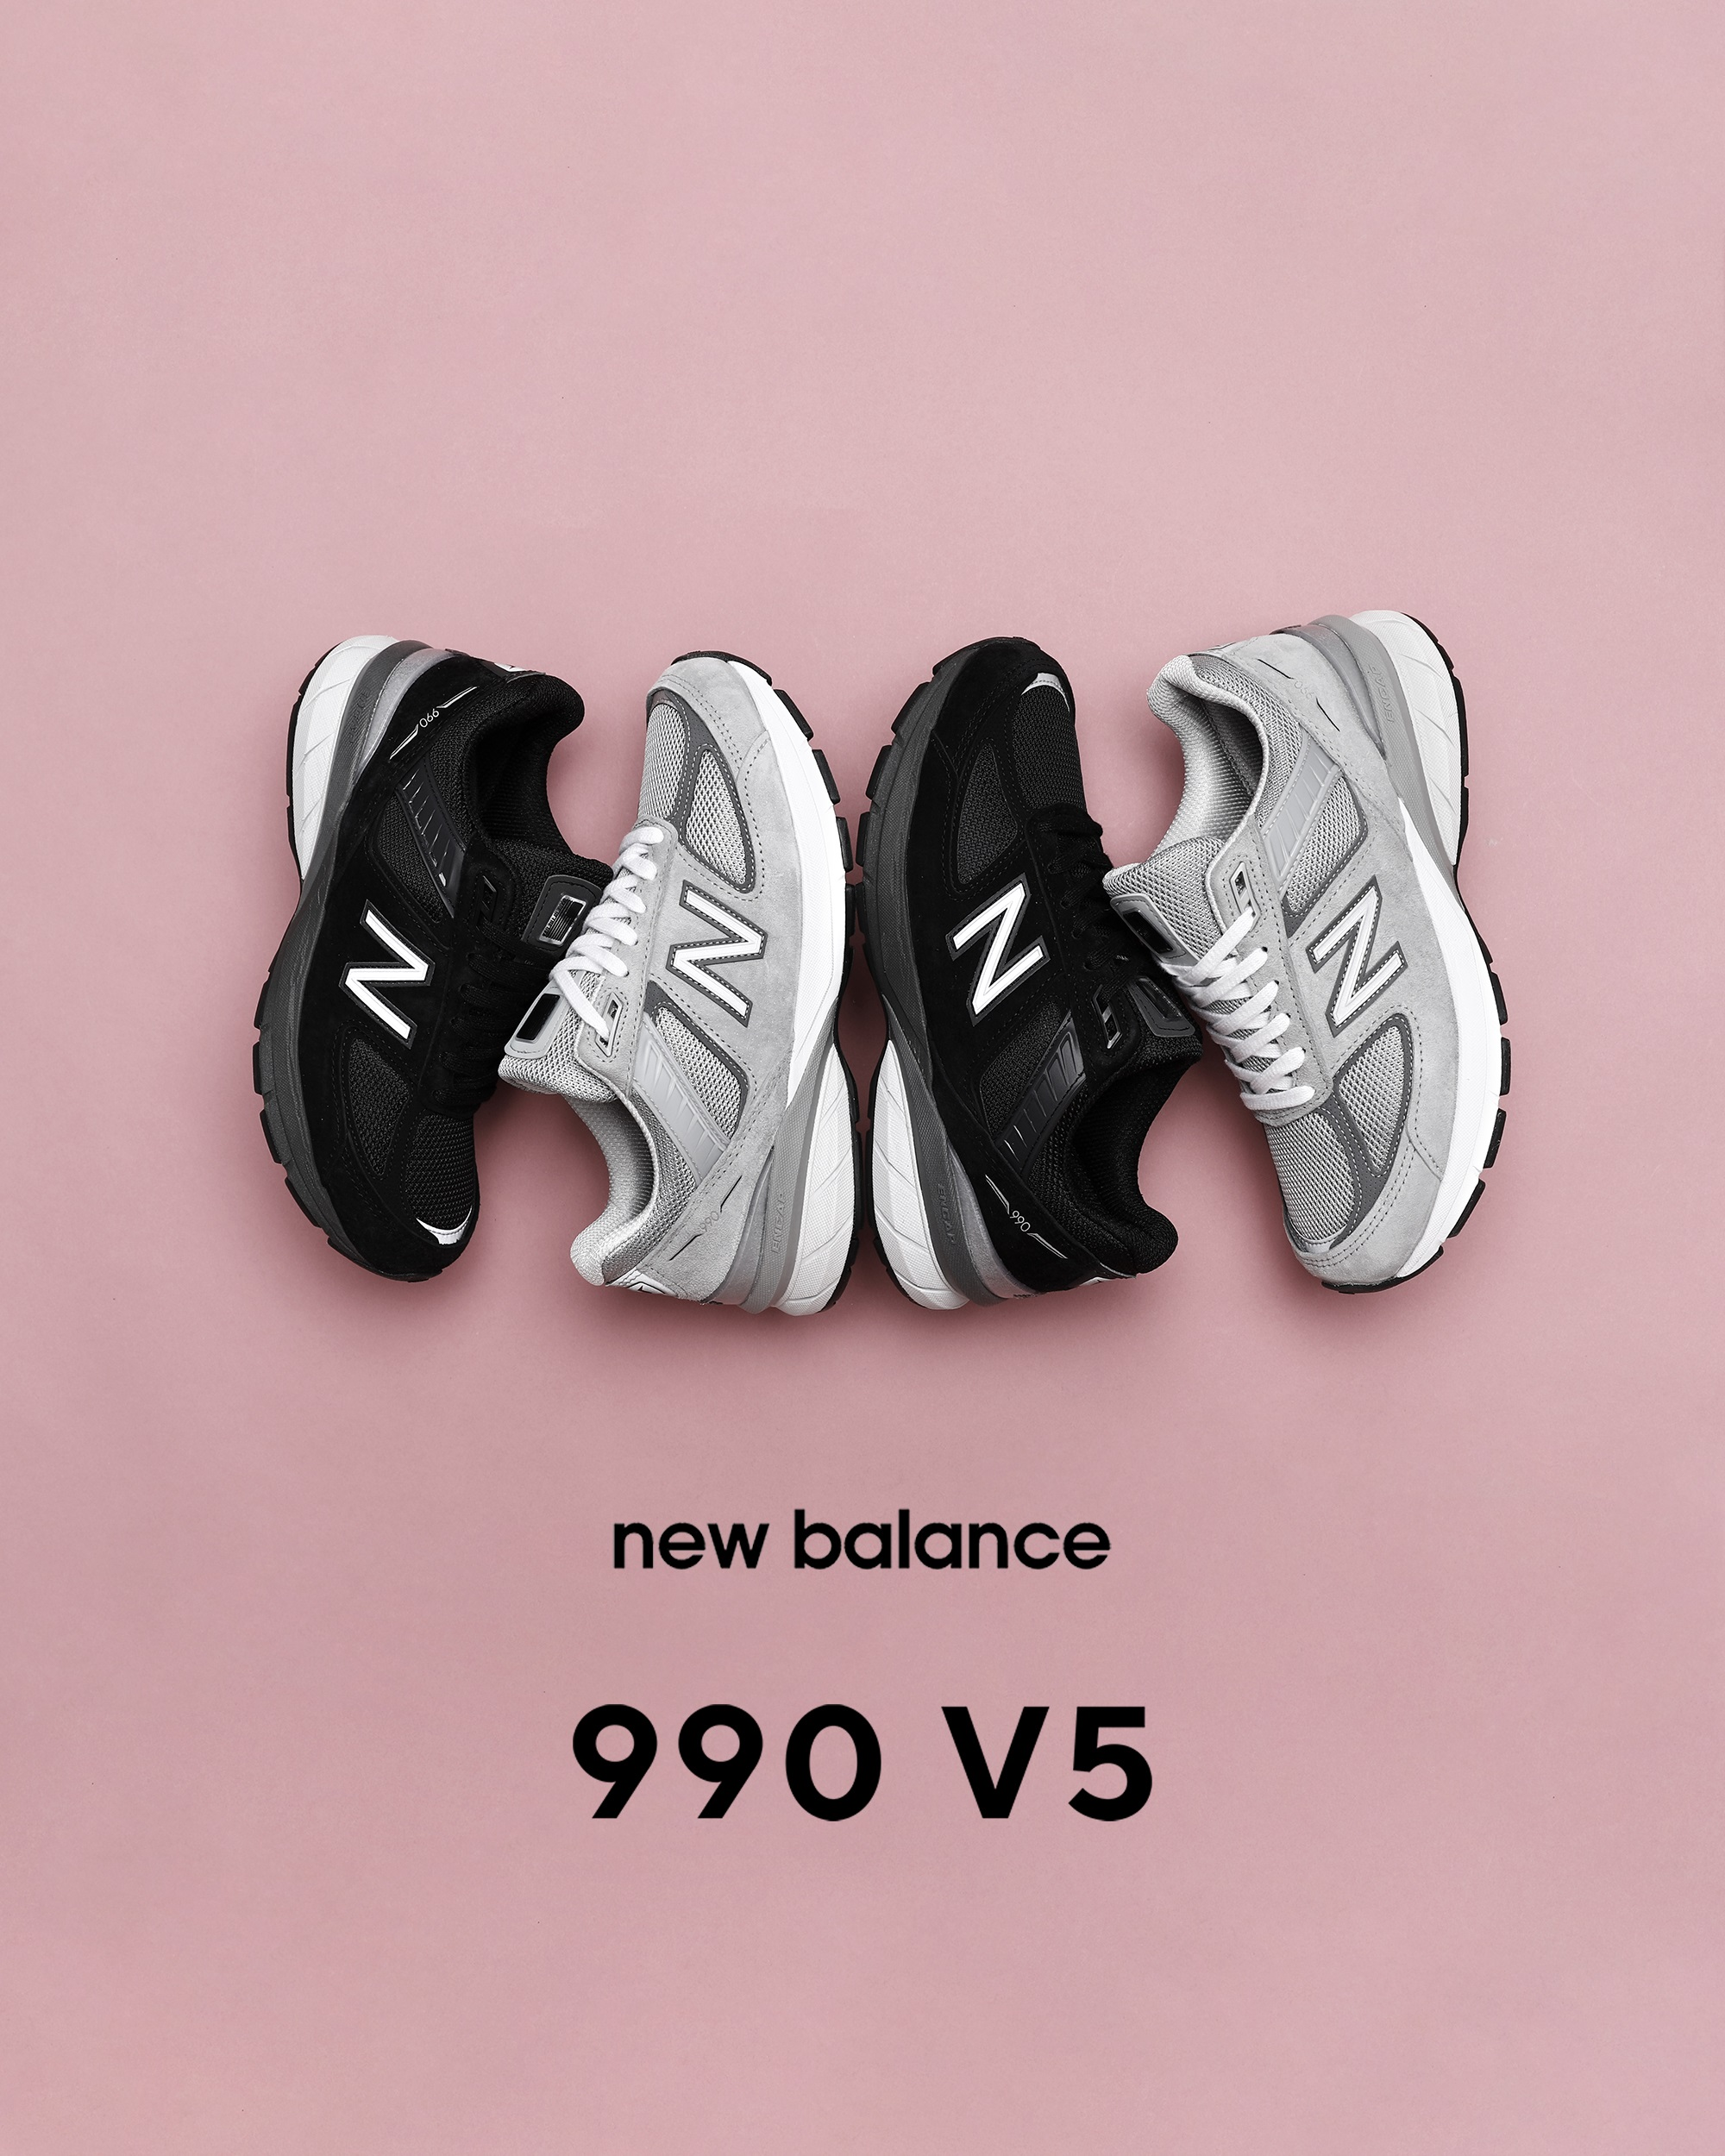 7a282689ef0 Naked - Supplying girls with sneakers